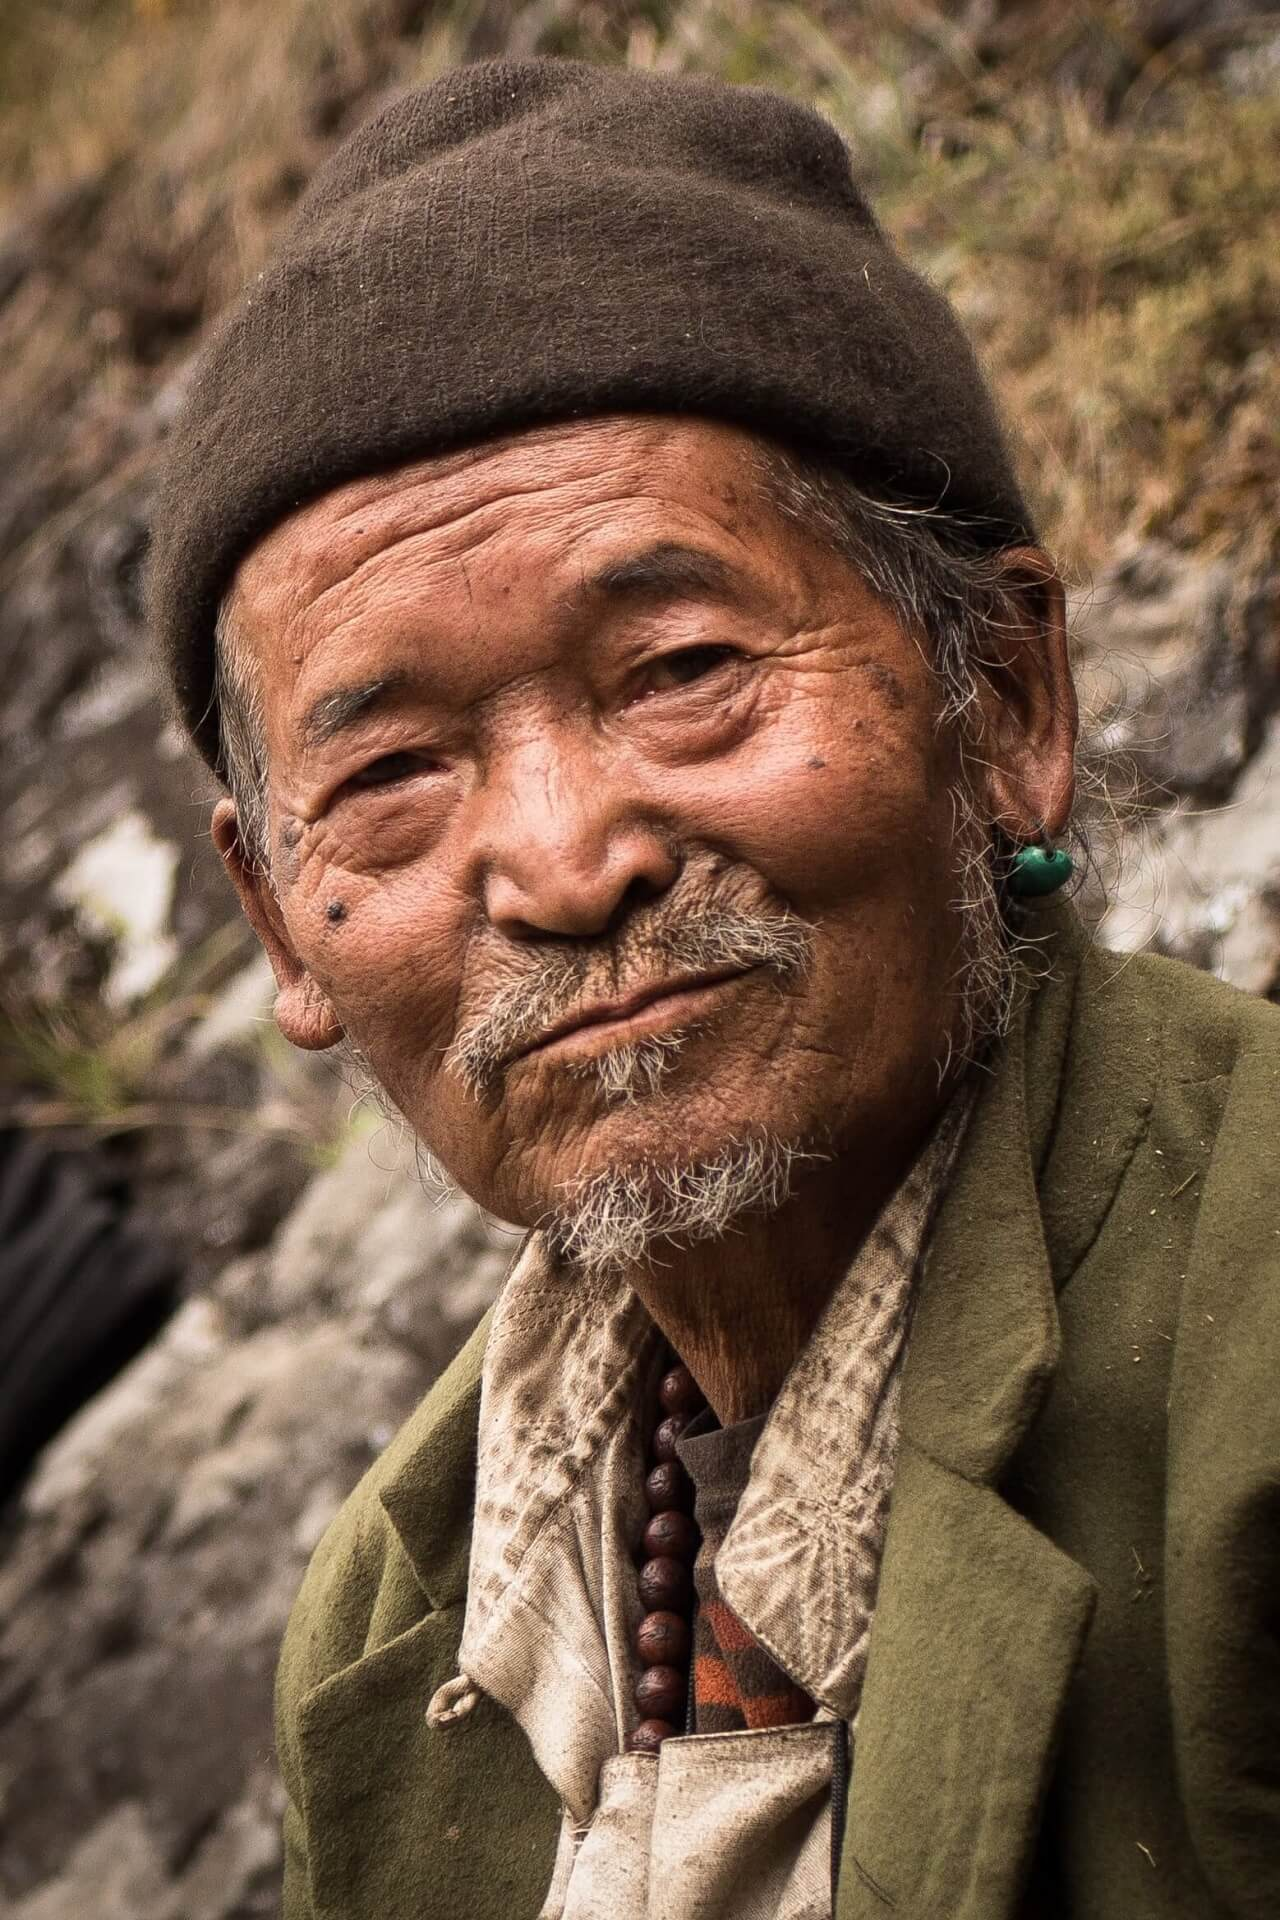 Nepali Old Man Smiling - Friendly